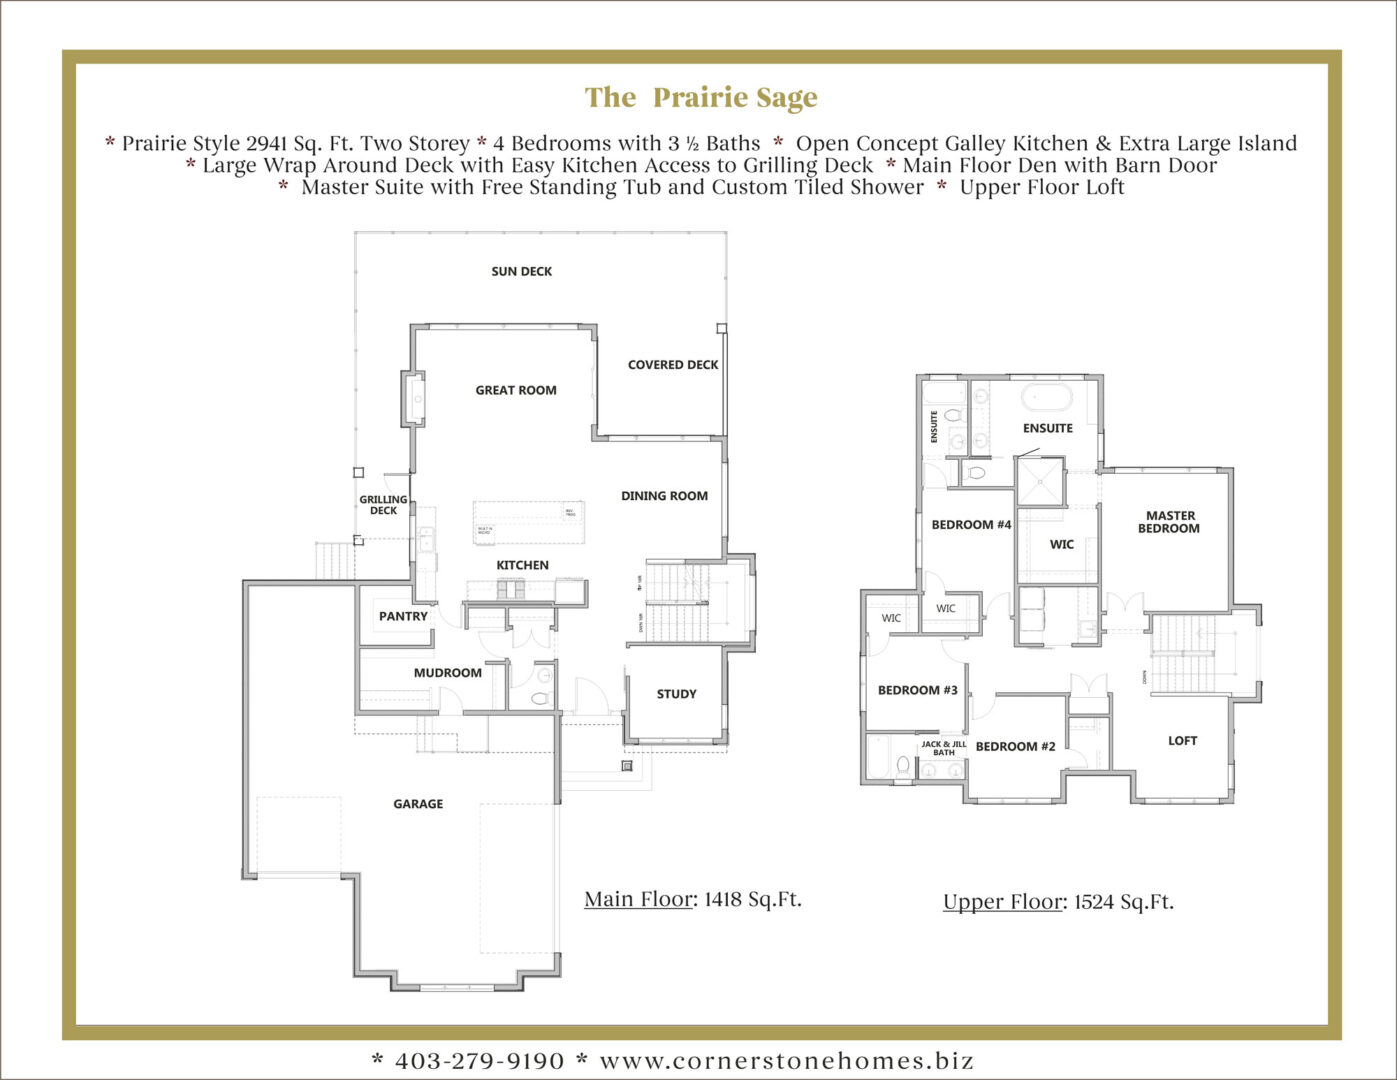 NEW-Prairie-Sage-FLOOR-PLANS